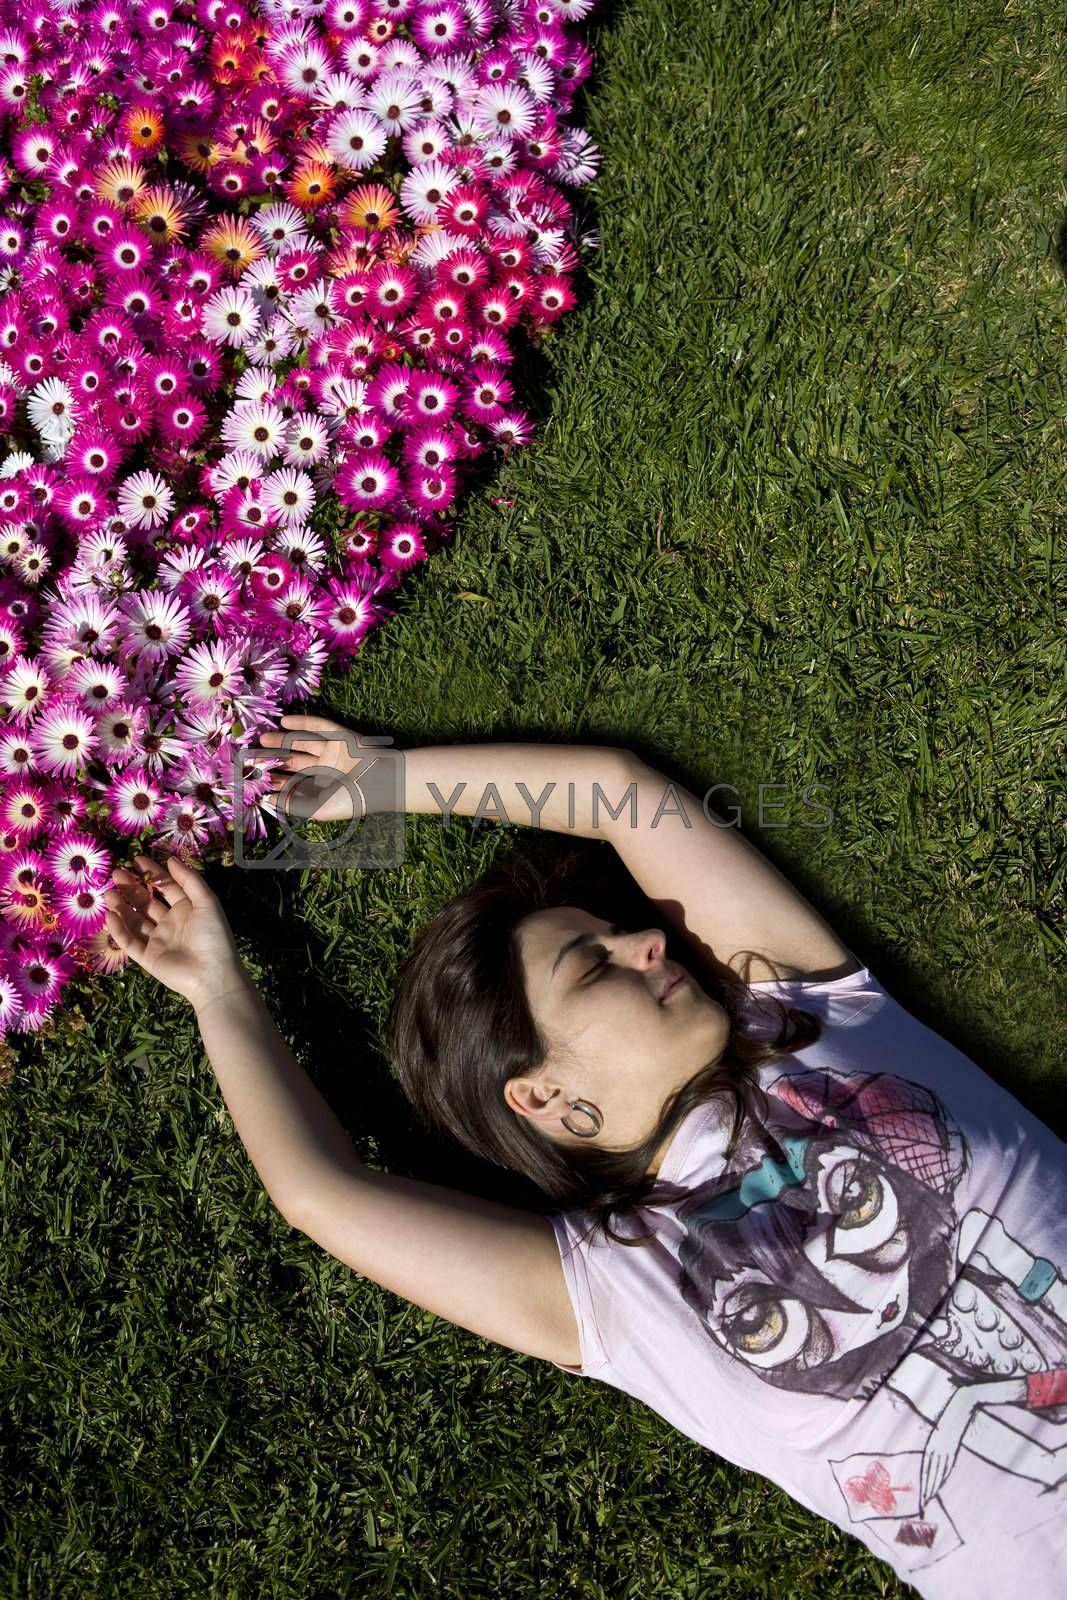 beautiful young woman in the grass with colorful flower bouquet